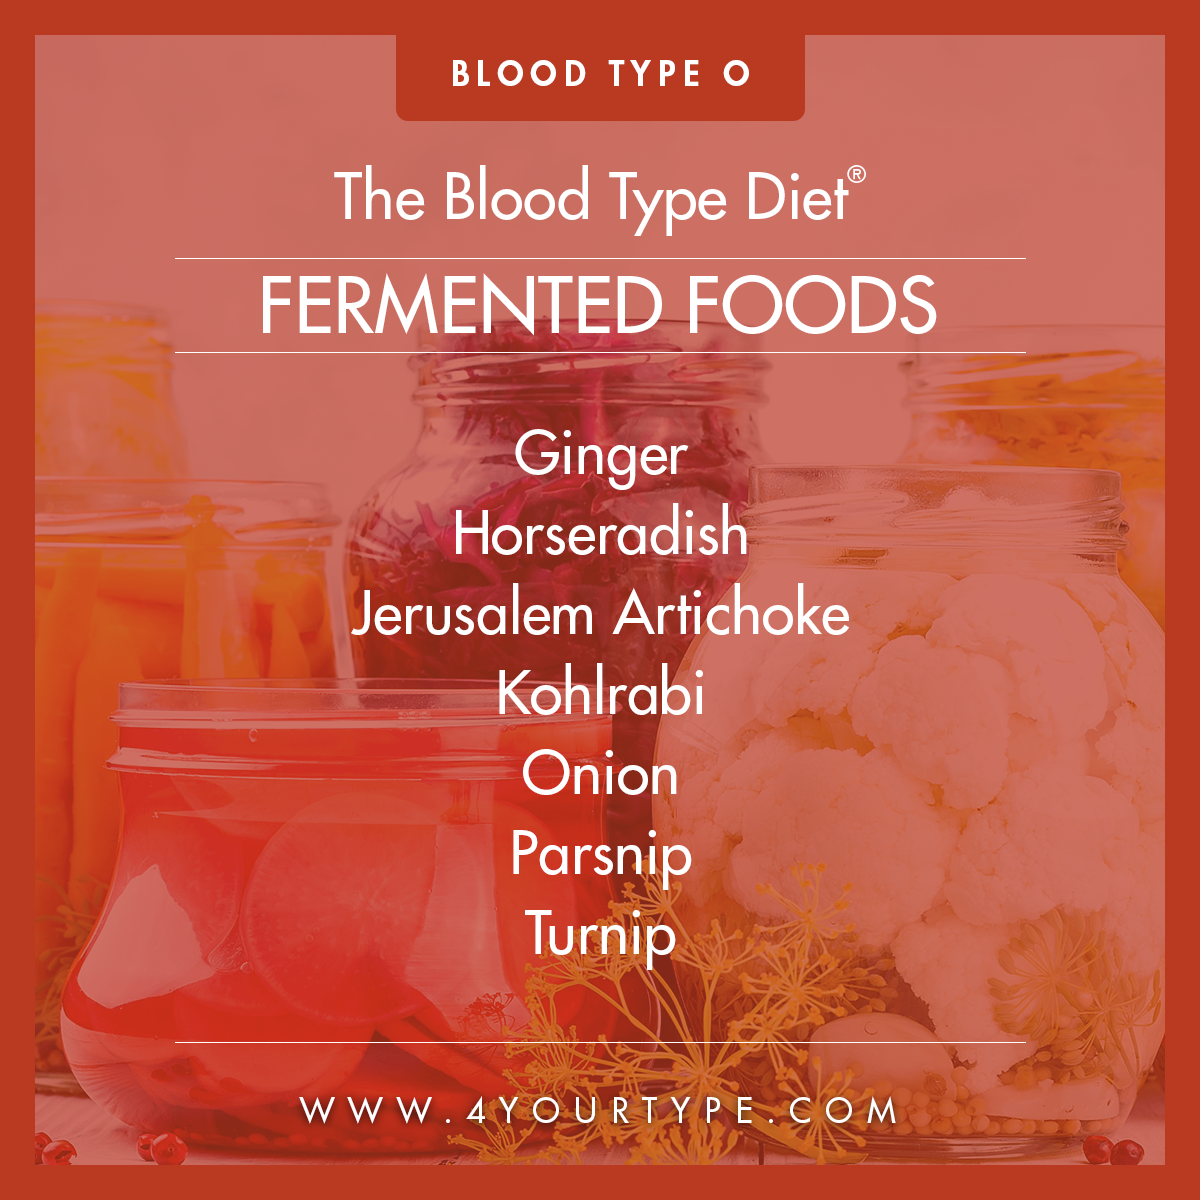 Blood Type O - Fermented Foods